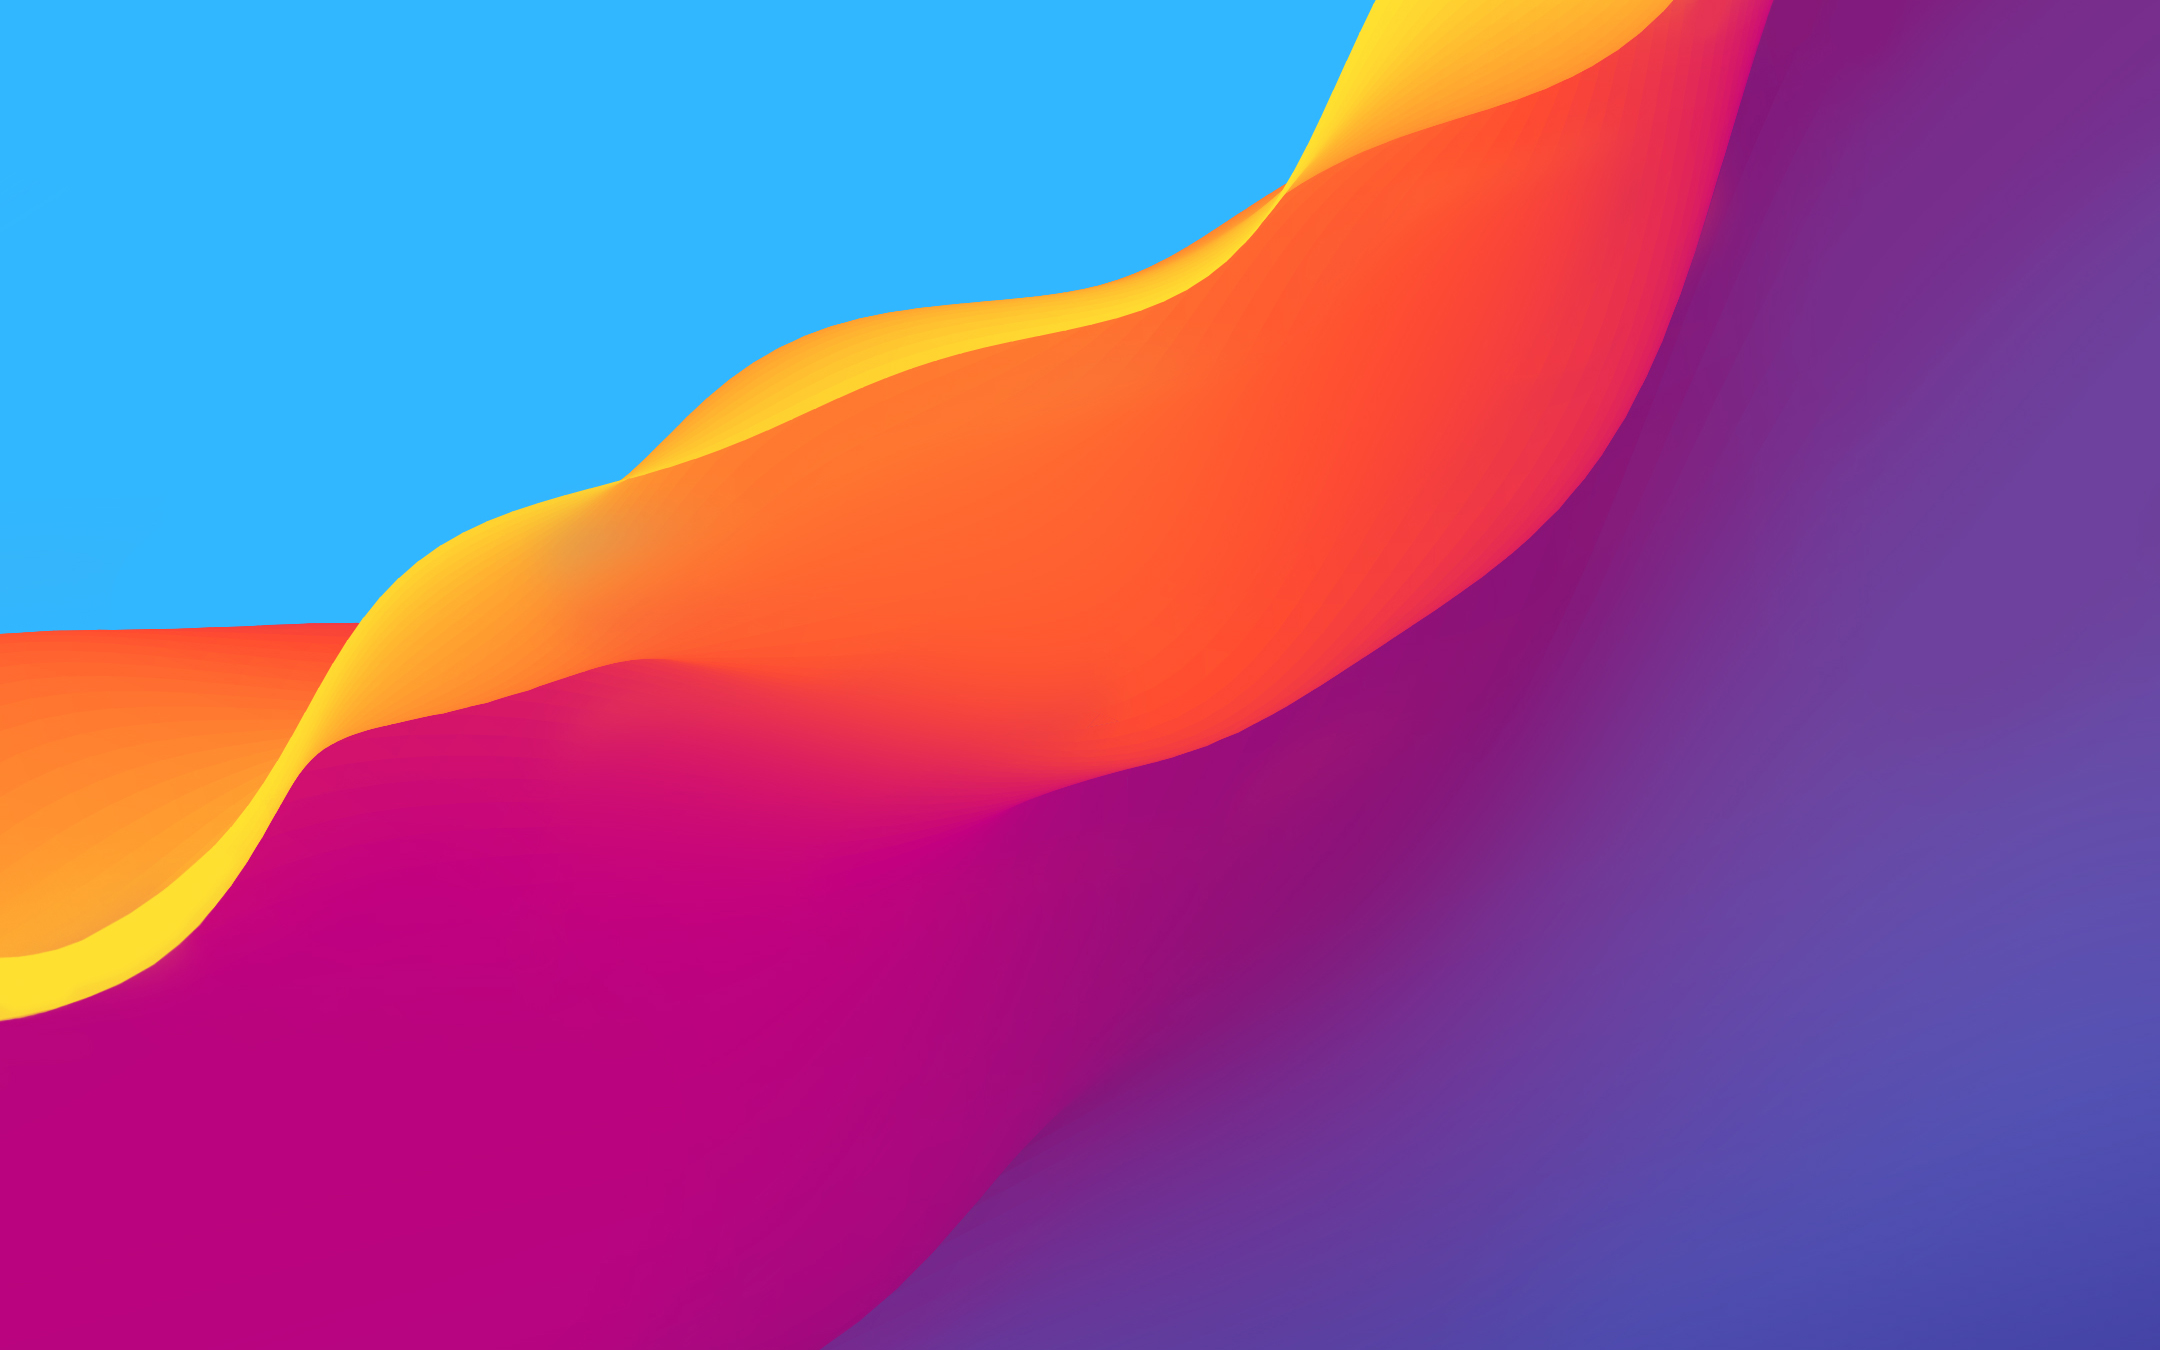 flow colorful hd colorful, flow, mkbhd wallpaper download - high